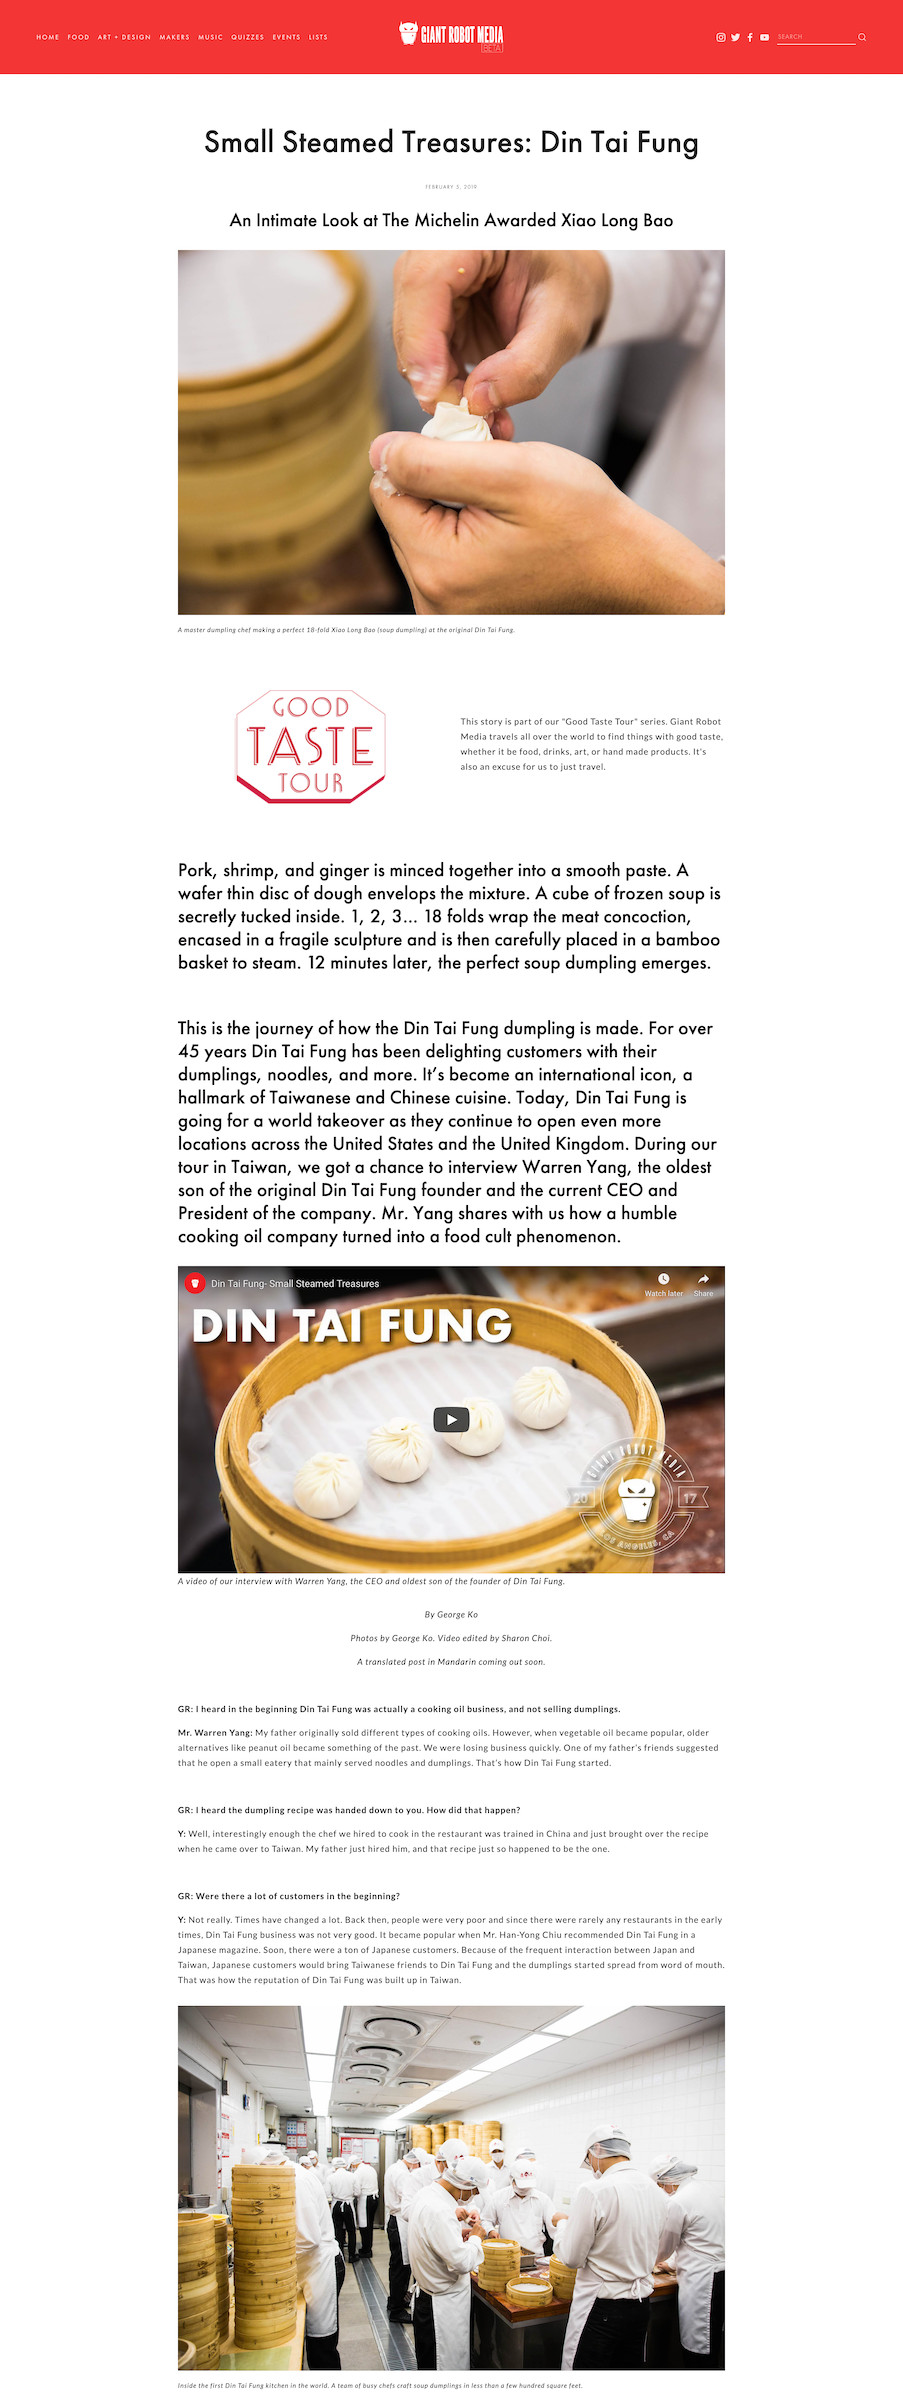 FireShot Capture 014 - Small Steamed Treasures_ Din Tai Fung — Giant Robot Media_ - www.giantrobot.media.png